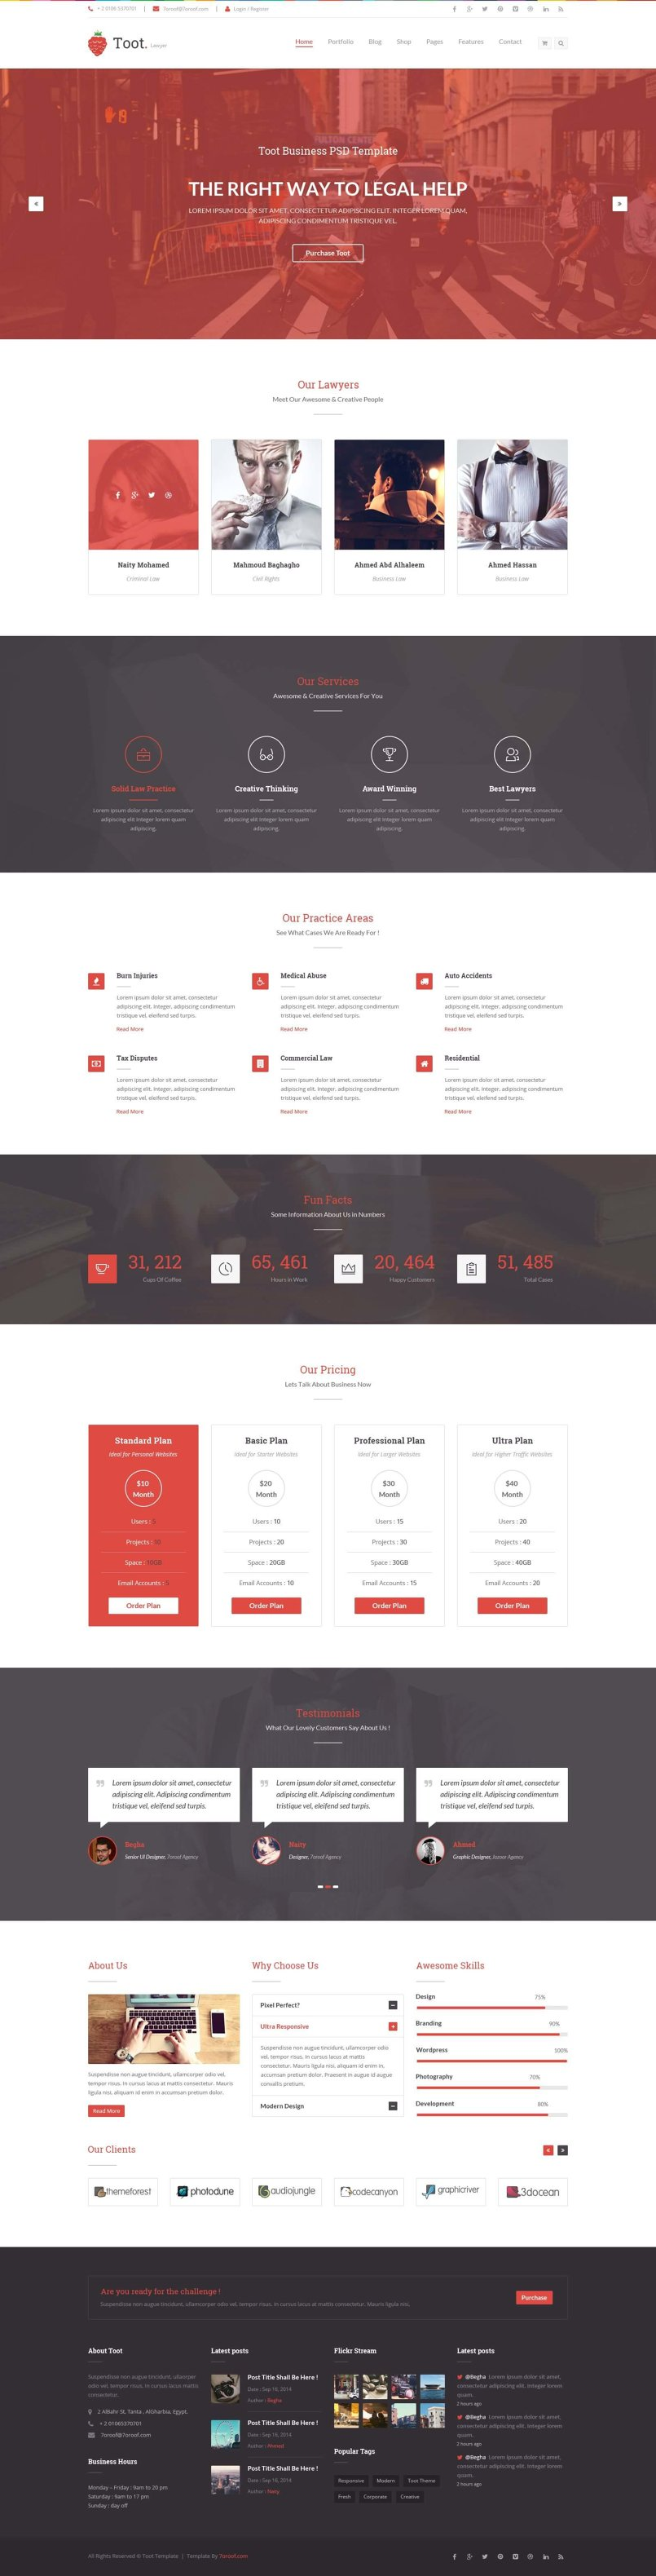 Toot – Multi-purpose Business HTML Template - By Mahmoud Bayomy ...